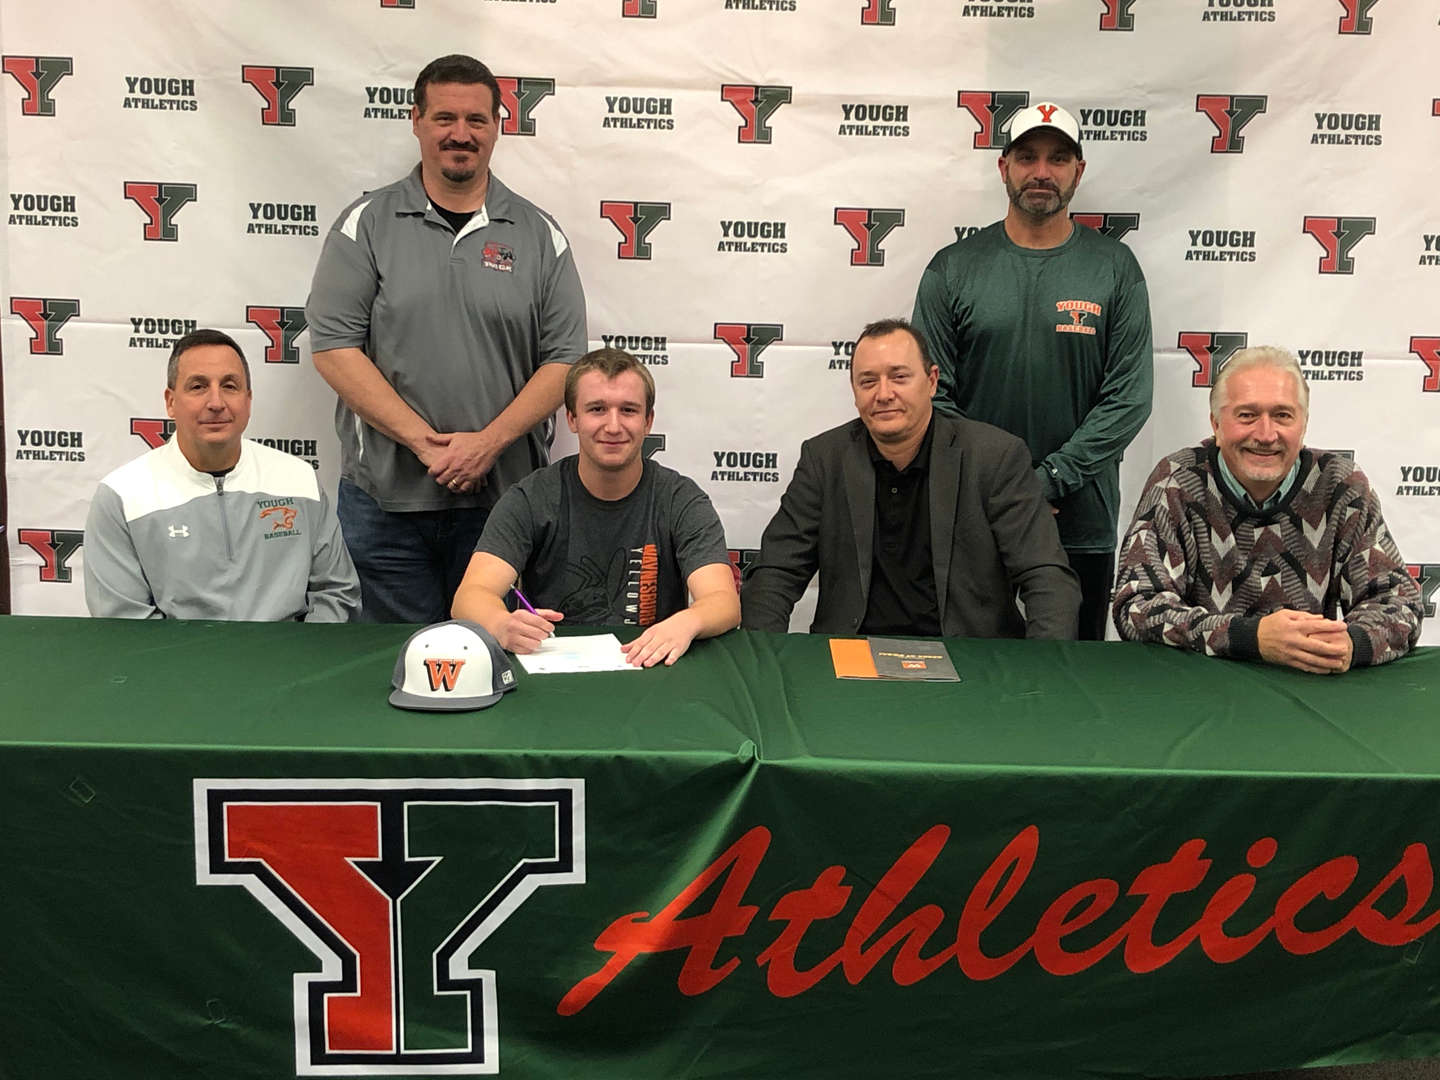 Michael Bell signing to attend Waynesburg University for baseball and academics.  Michael is shown with:  Coach Spisak, Brian Dippolito, School Board Member Jared Filapose, Ken Pritts and School Board Member Al Novacek